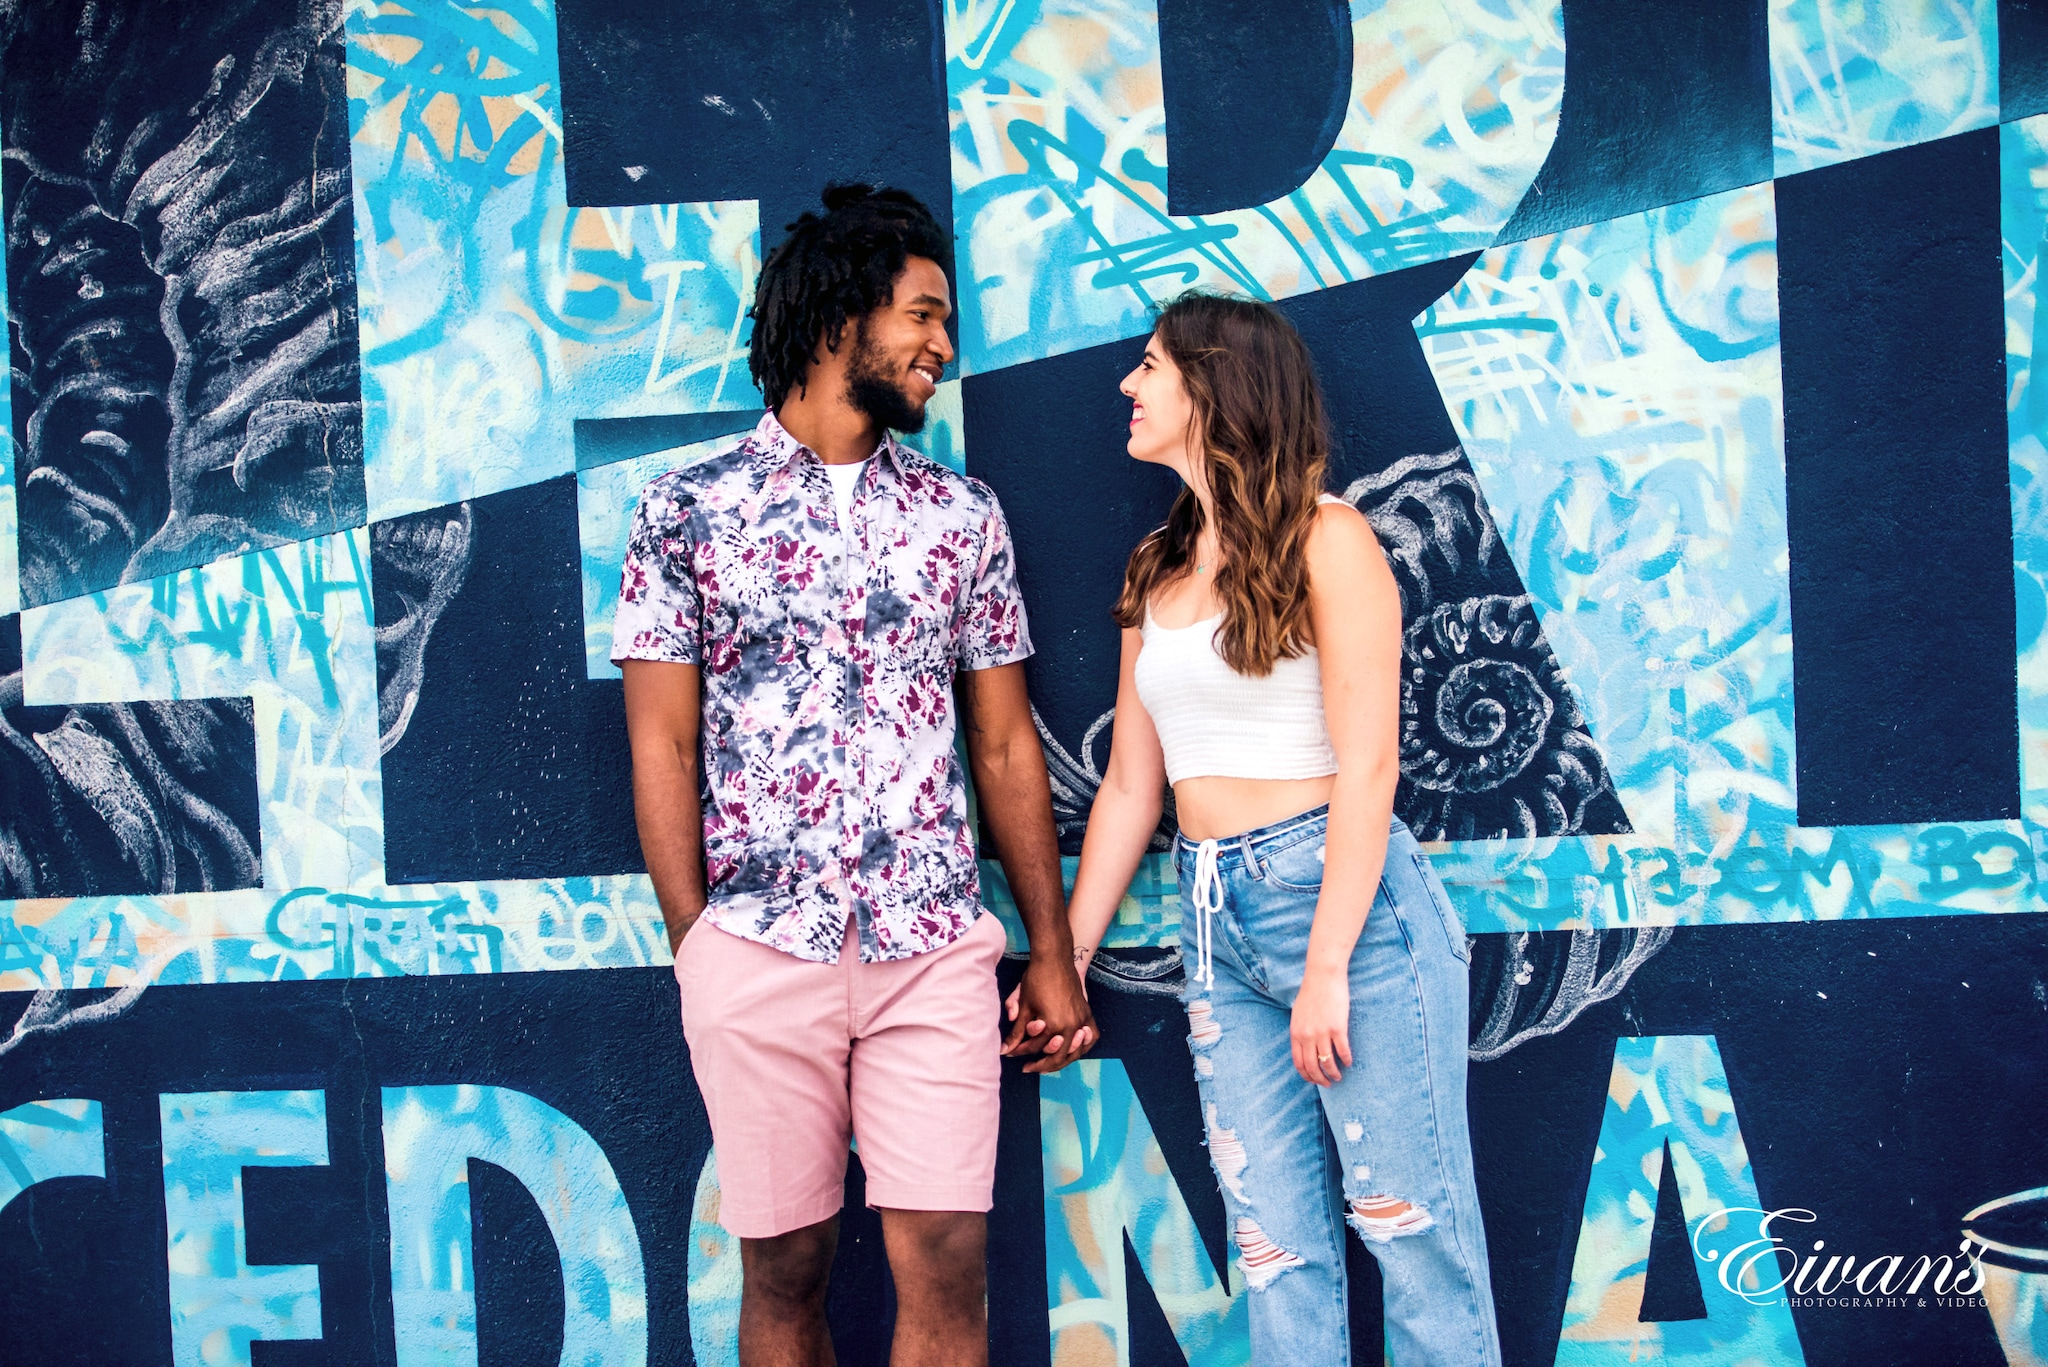 man and woman standing beside wall with graffiti